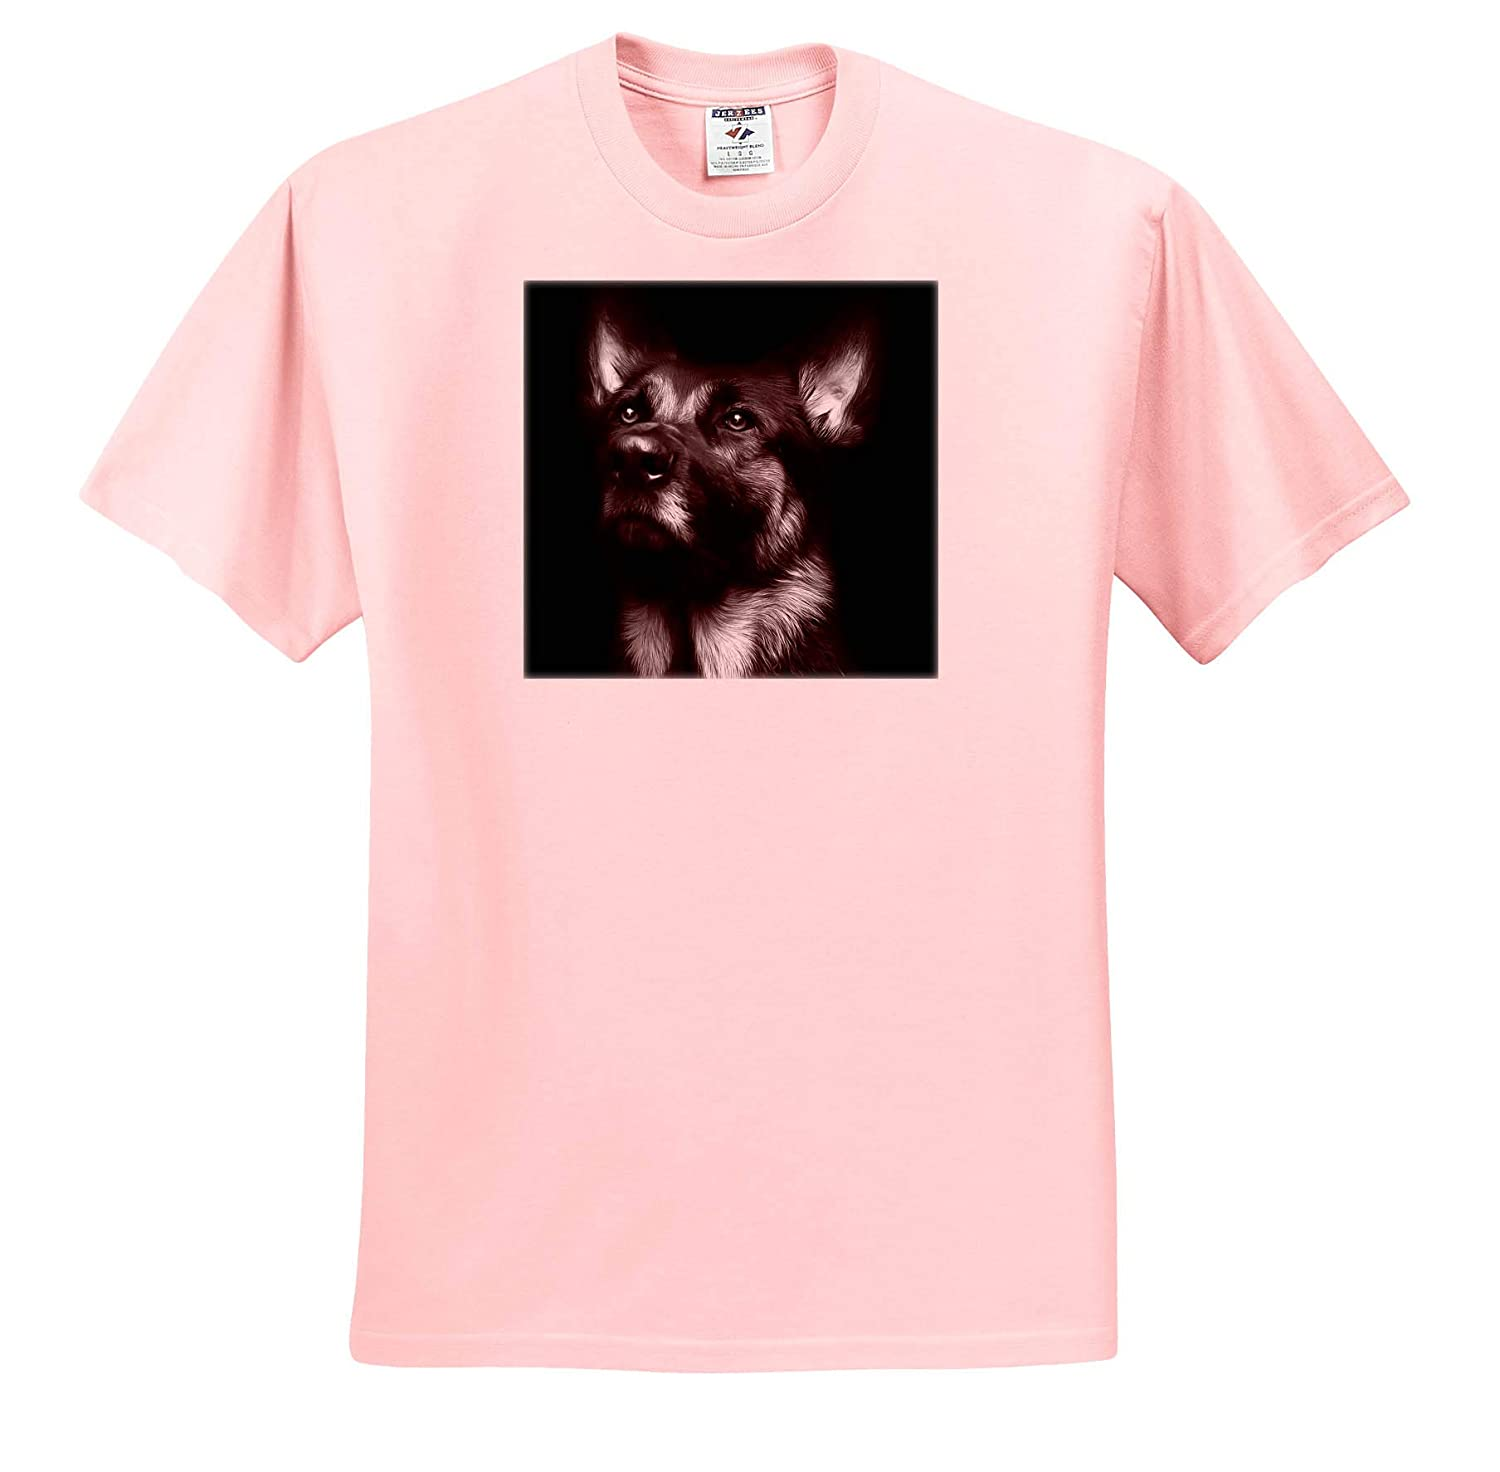 3dRose Stamp City Animals - T-Shirts Black and White Photo of a Regal German Shepherd Painted in Photoshop